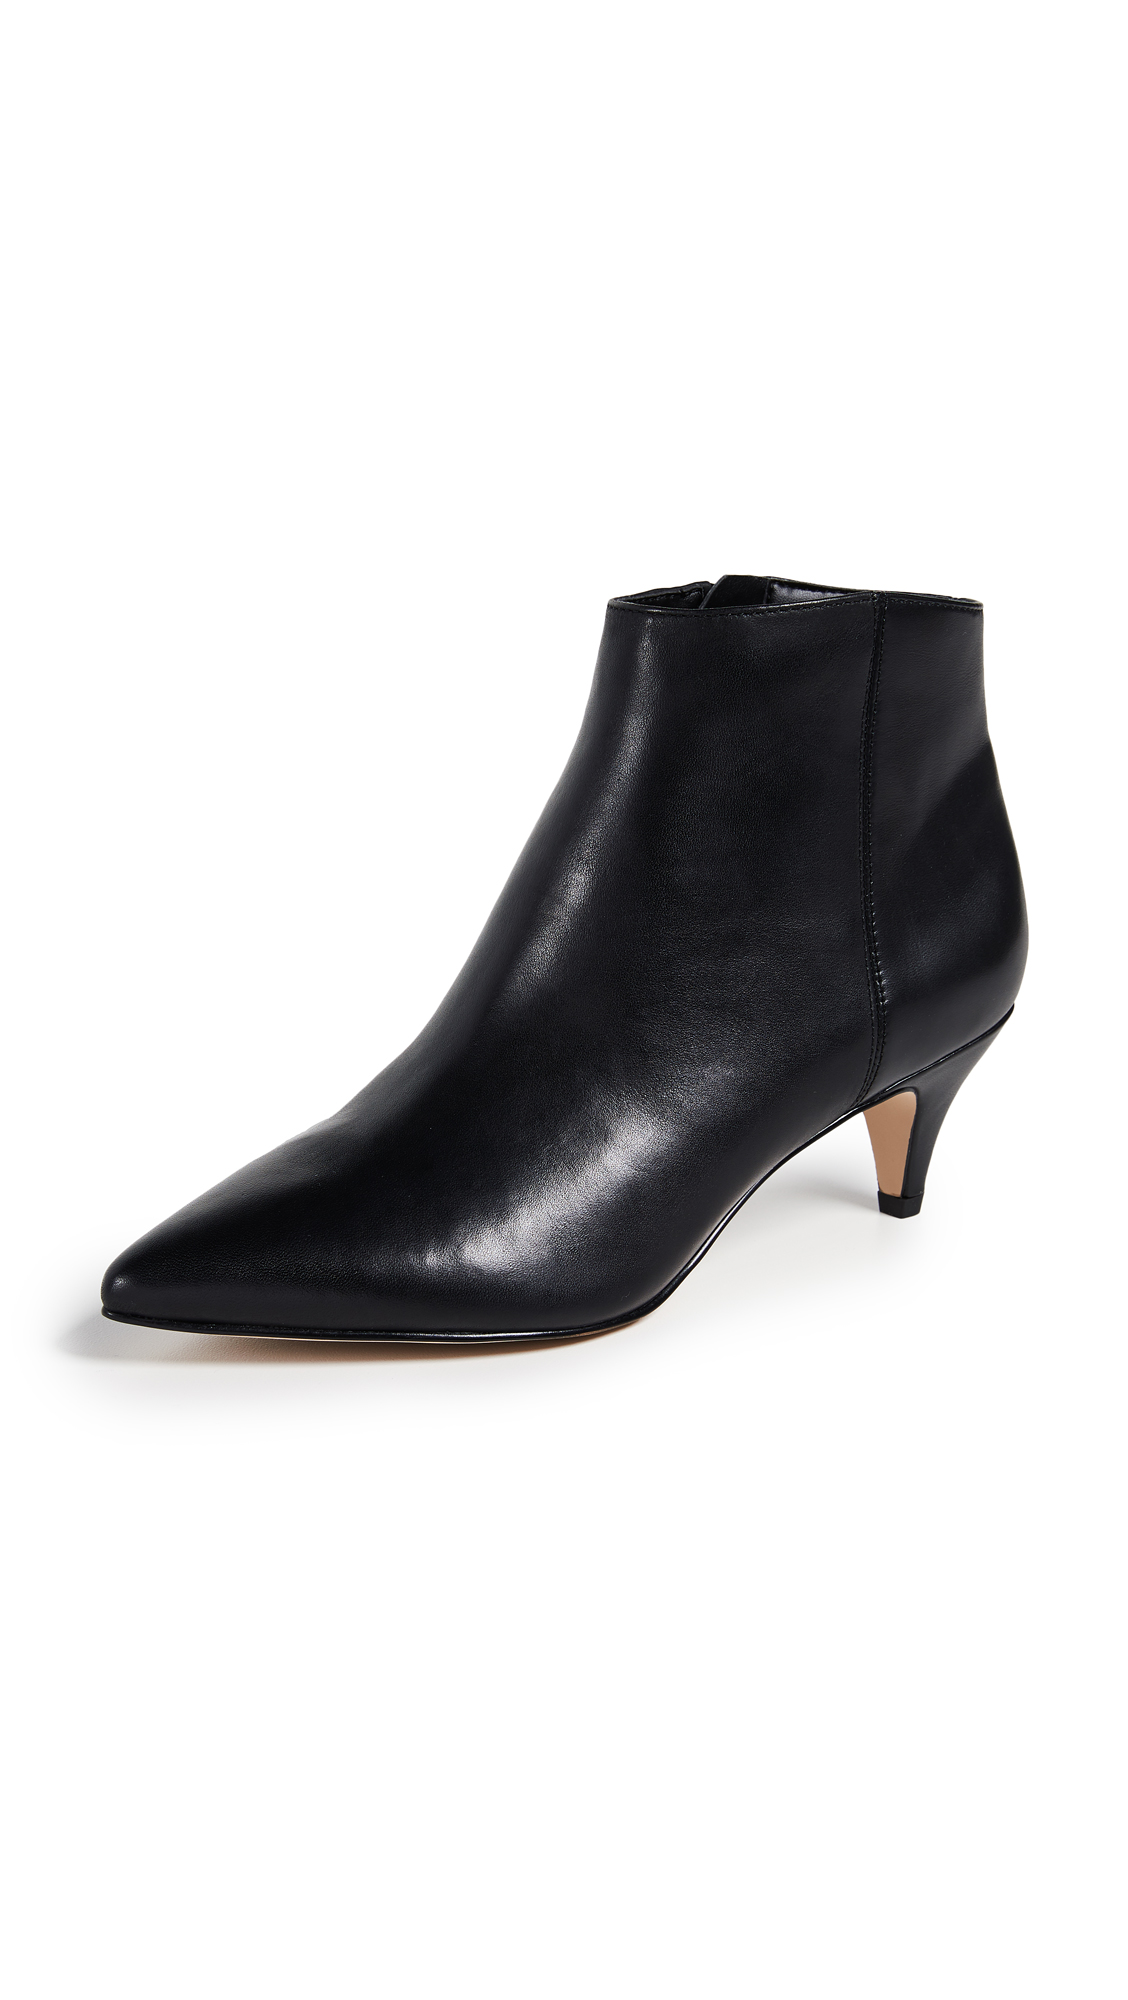 Sam Edelman Kinzey Booties - Black